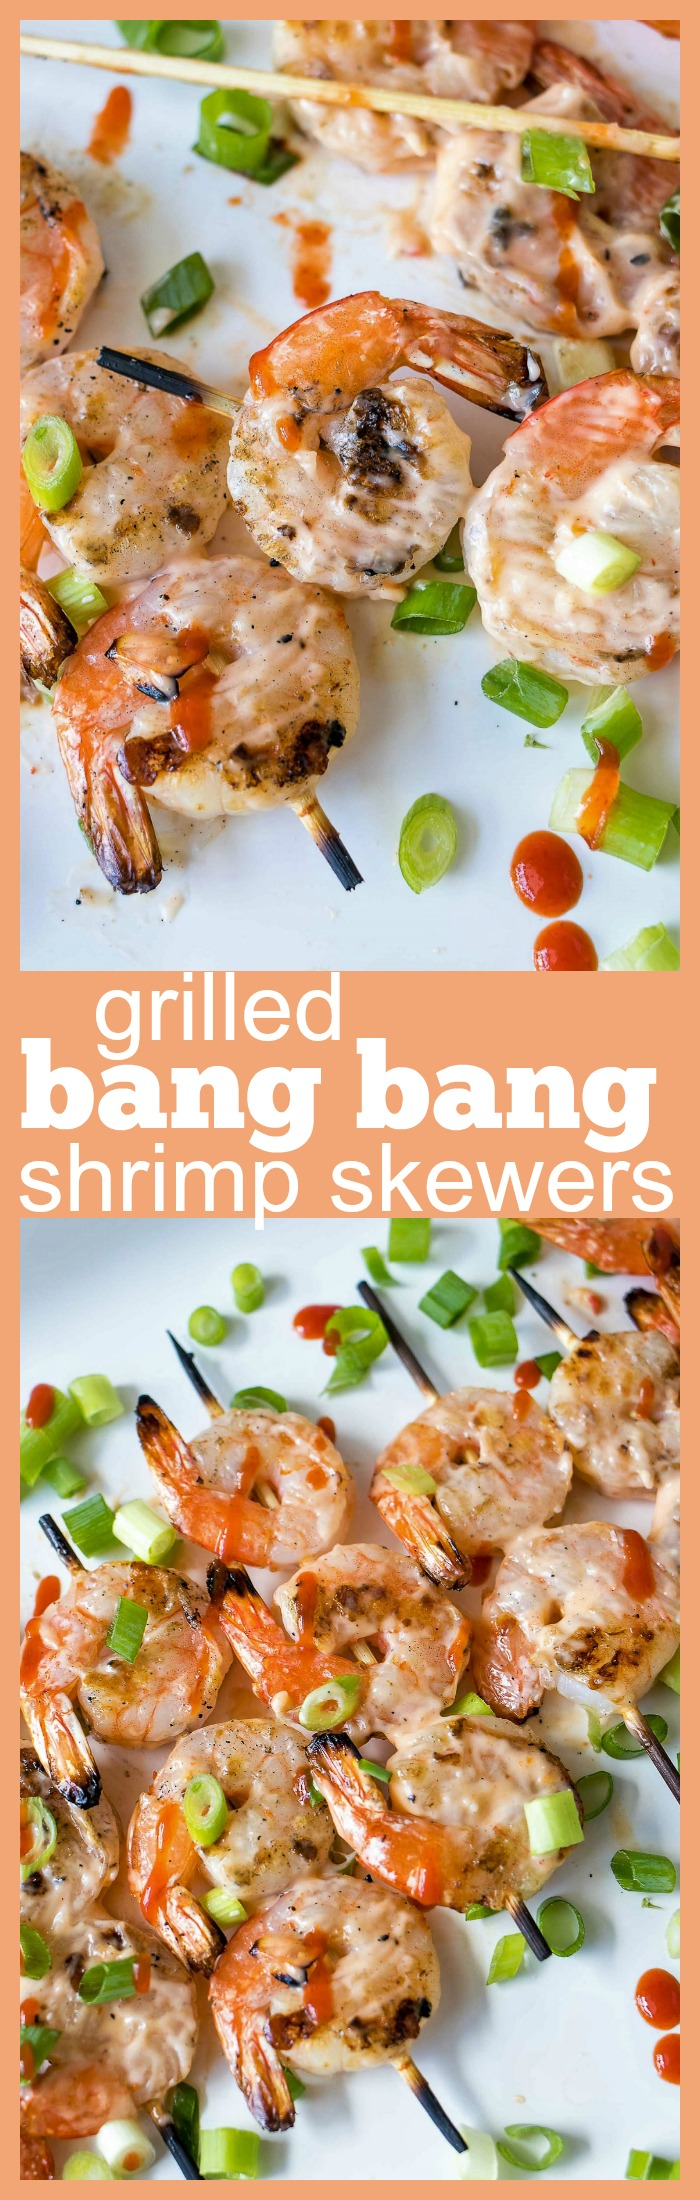 Grilled Bang Bang Shrimp Skewers photo collage